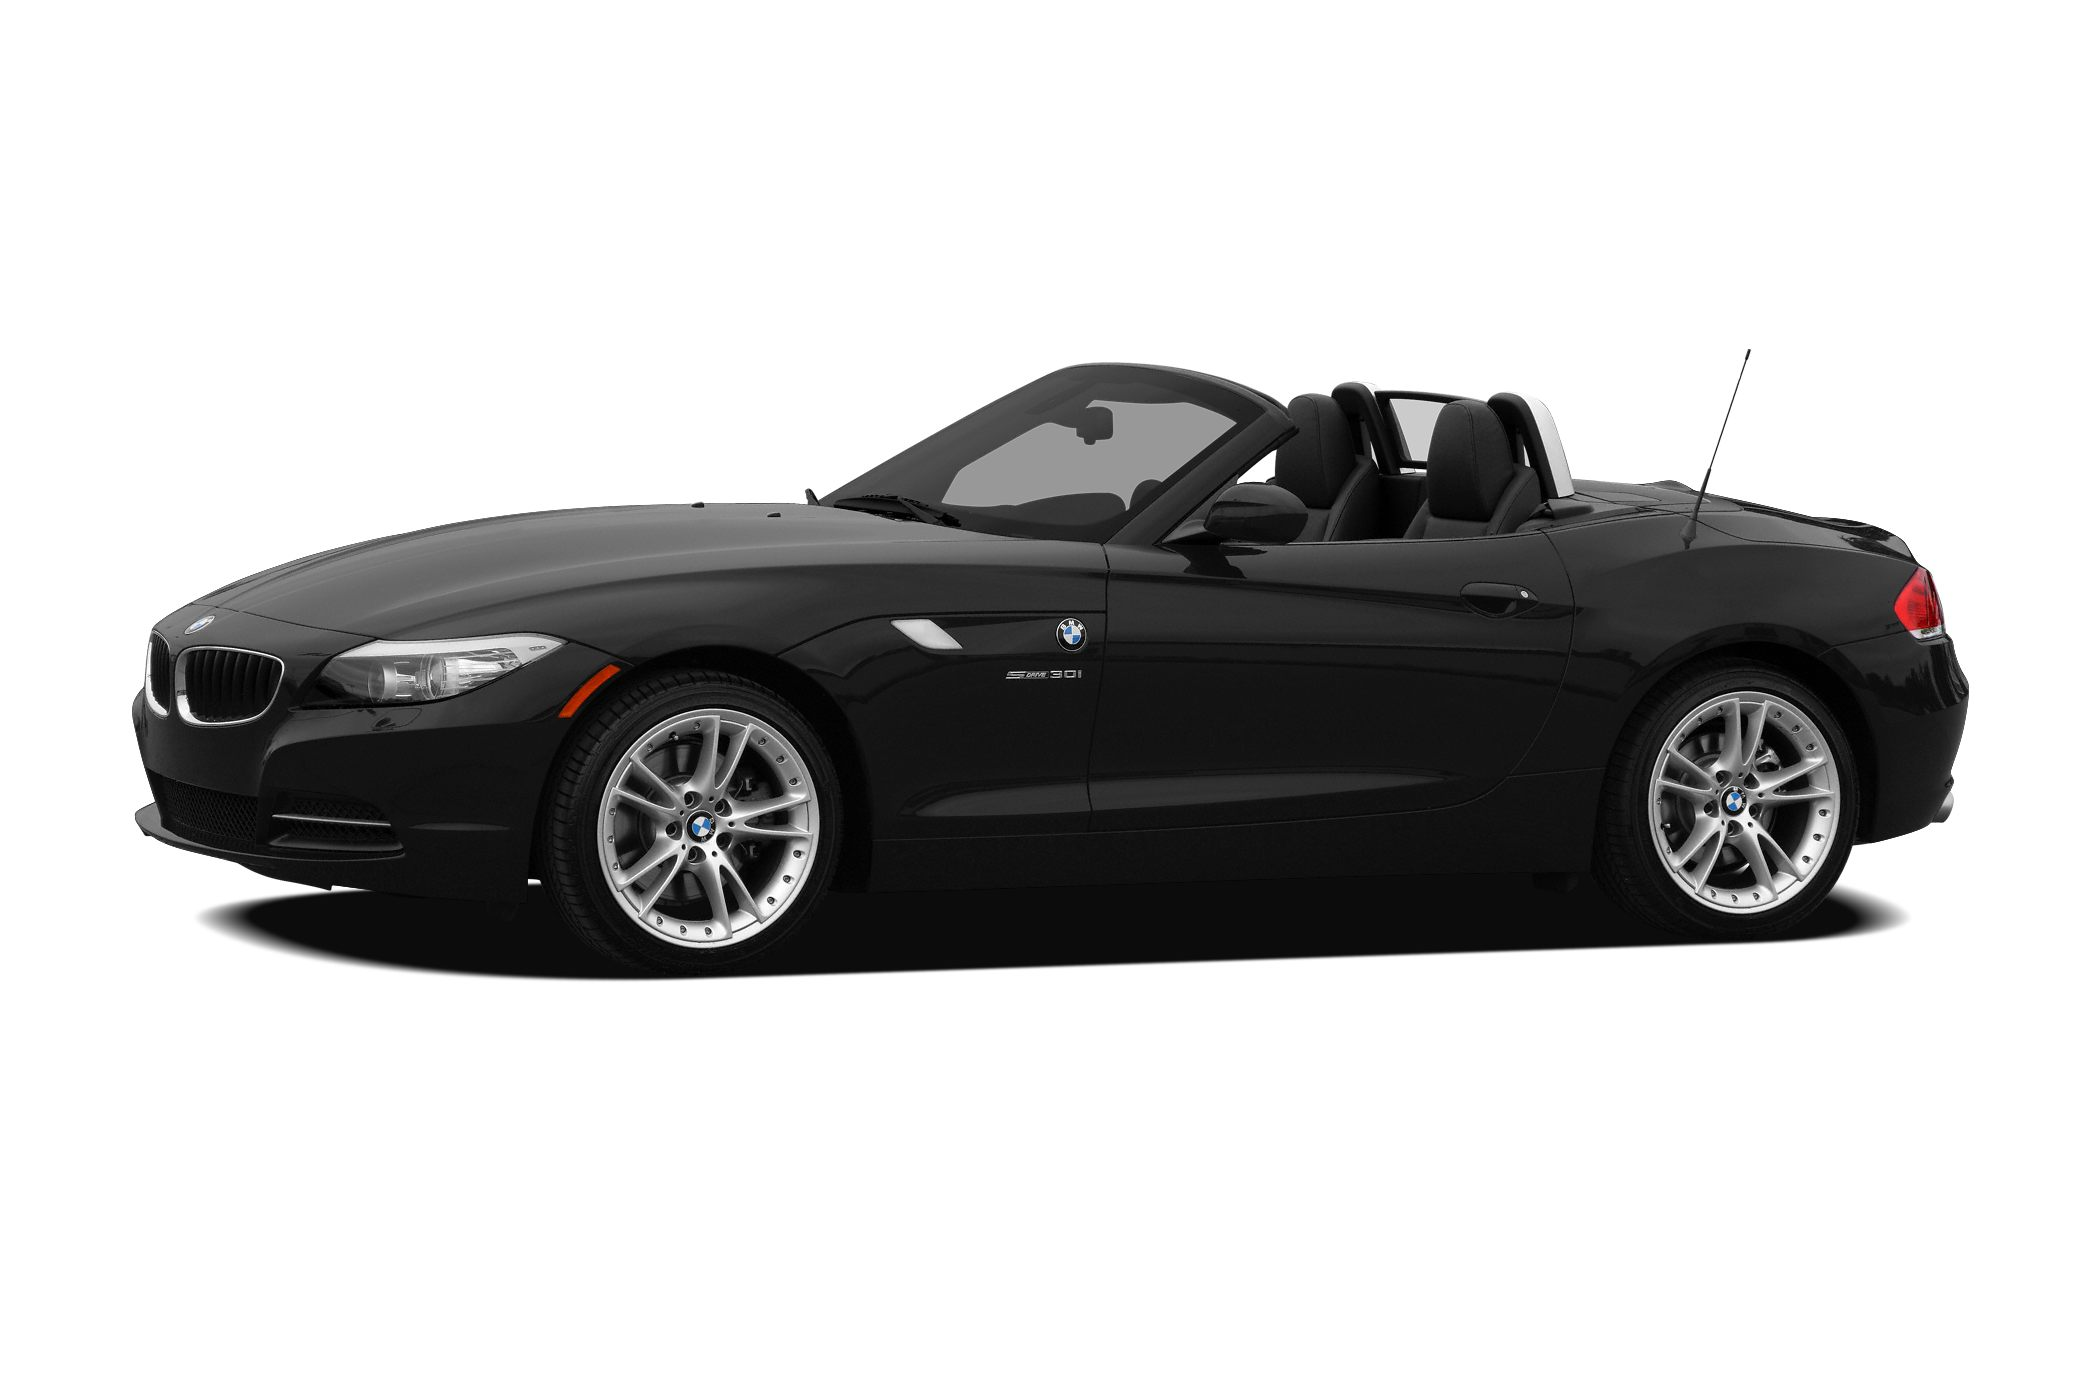 2009 BMW Z4 SDrive35i Convertible for sale in Florence for $27,998 with 42,728 miles.